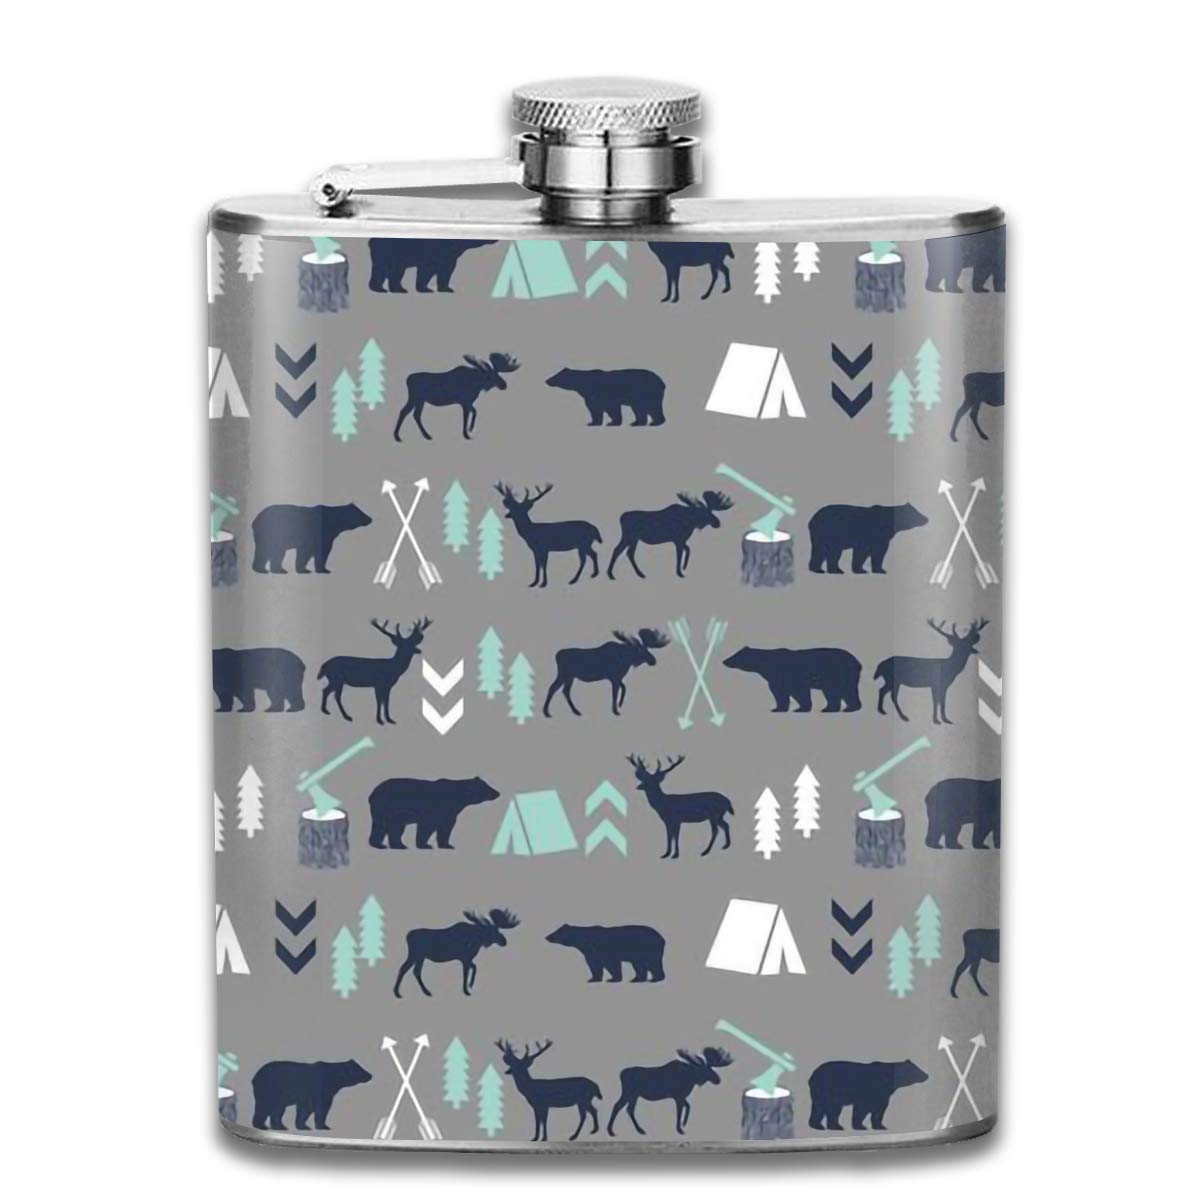 dfegyfr Men and Women Thick Stainless Steel Hip Flask 7 OZ